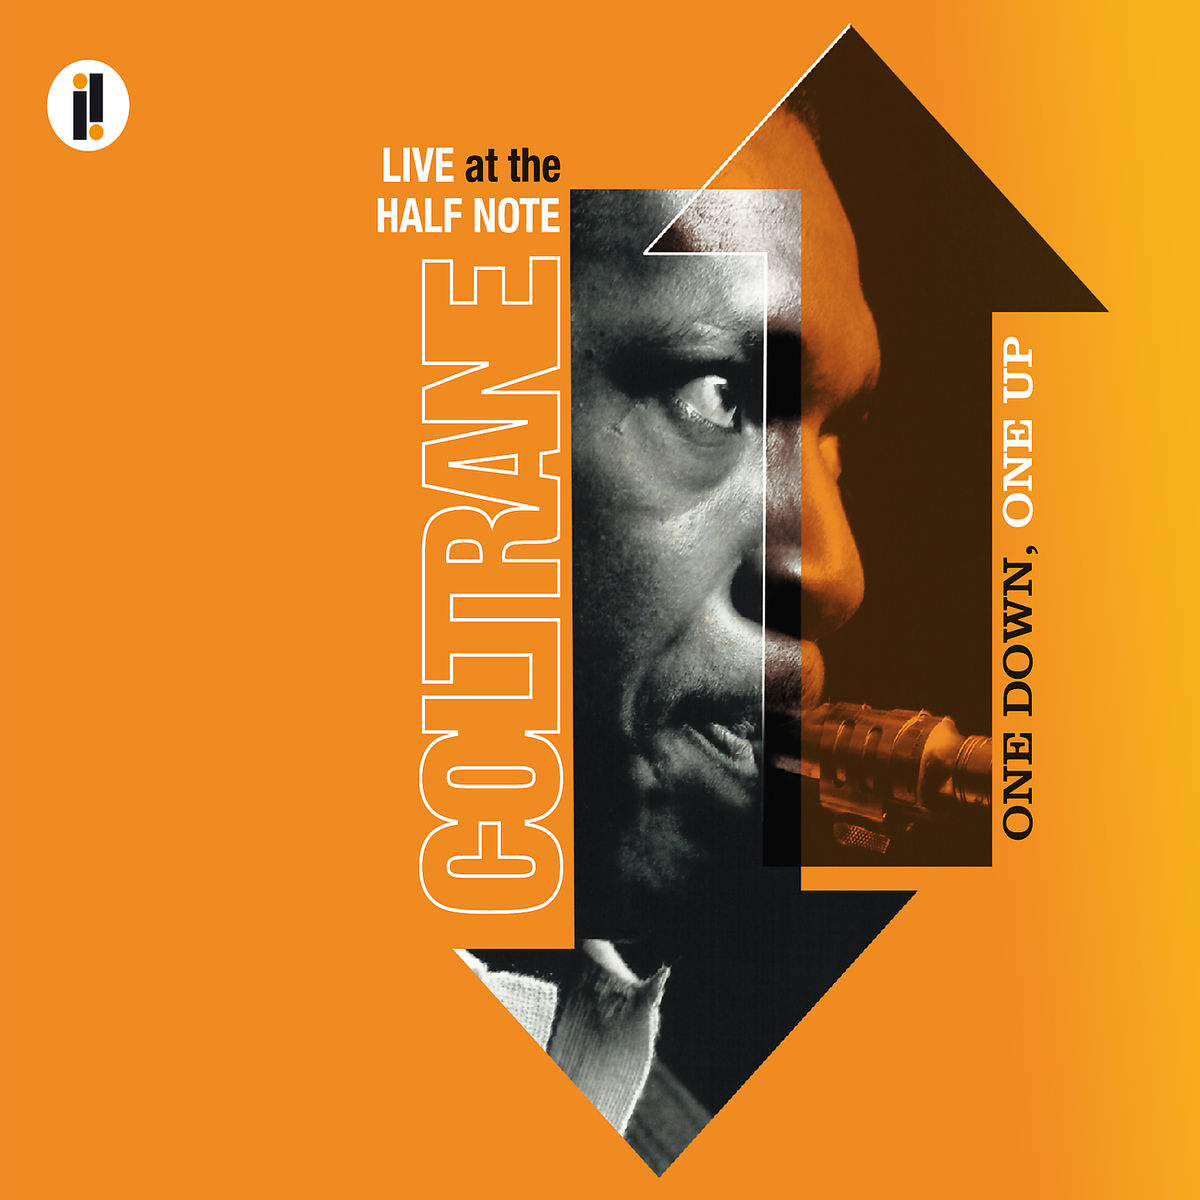 John Coltrane - One Down, One Up: Live at the Half Note